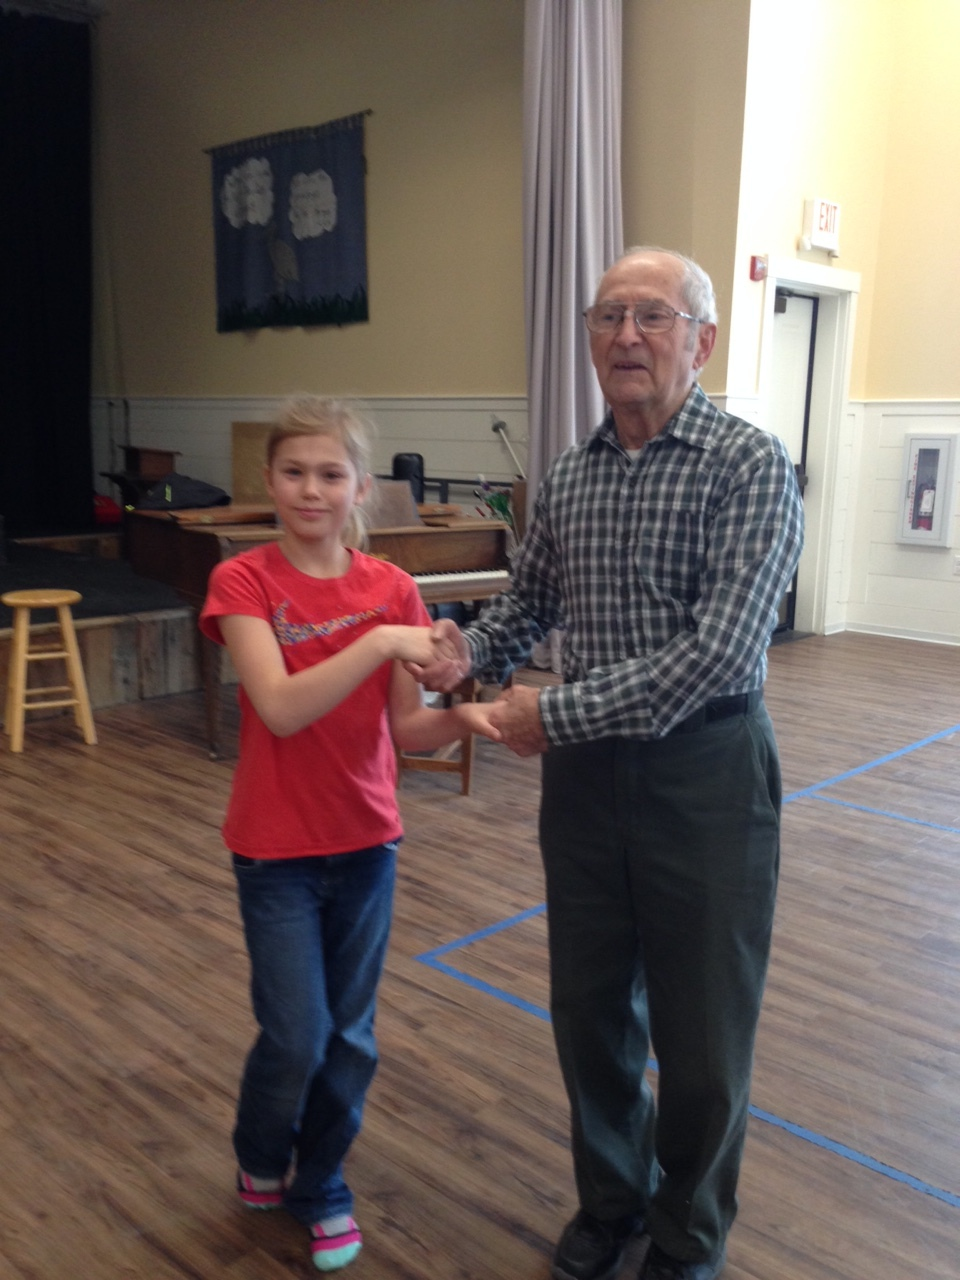 Lacey Patoine and Dale Deblois dance together in class.